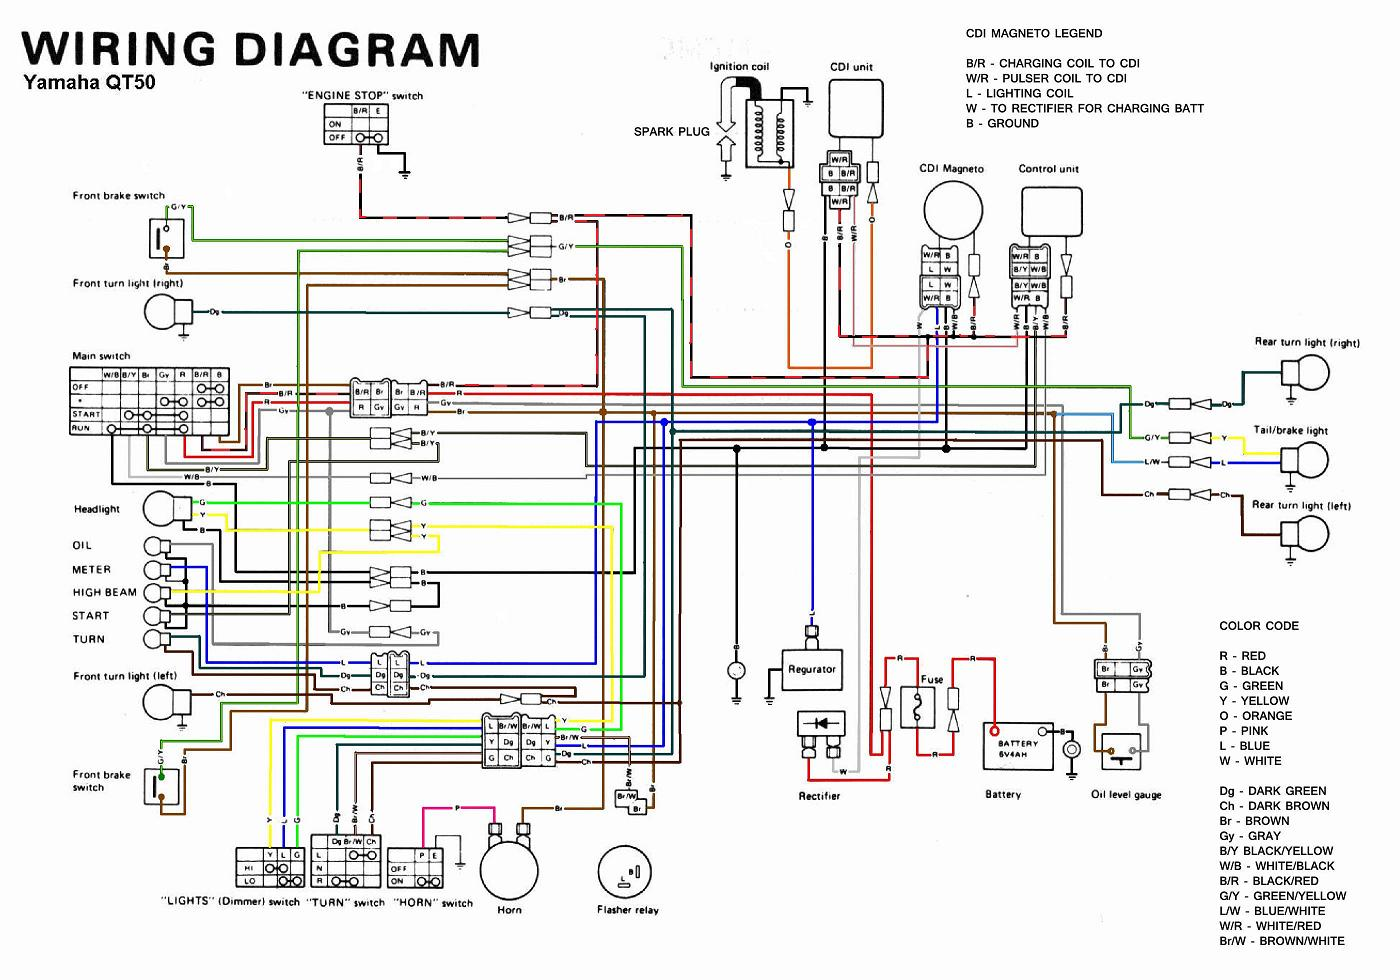 Yamaha QT50 Wiring Diagram suzuki fa50 wiring diagram suzuki fa50 oil \u2022 free wiring diagrams suzuki v100 wiring diagram at bayanpartner.co